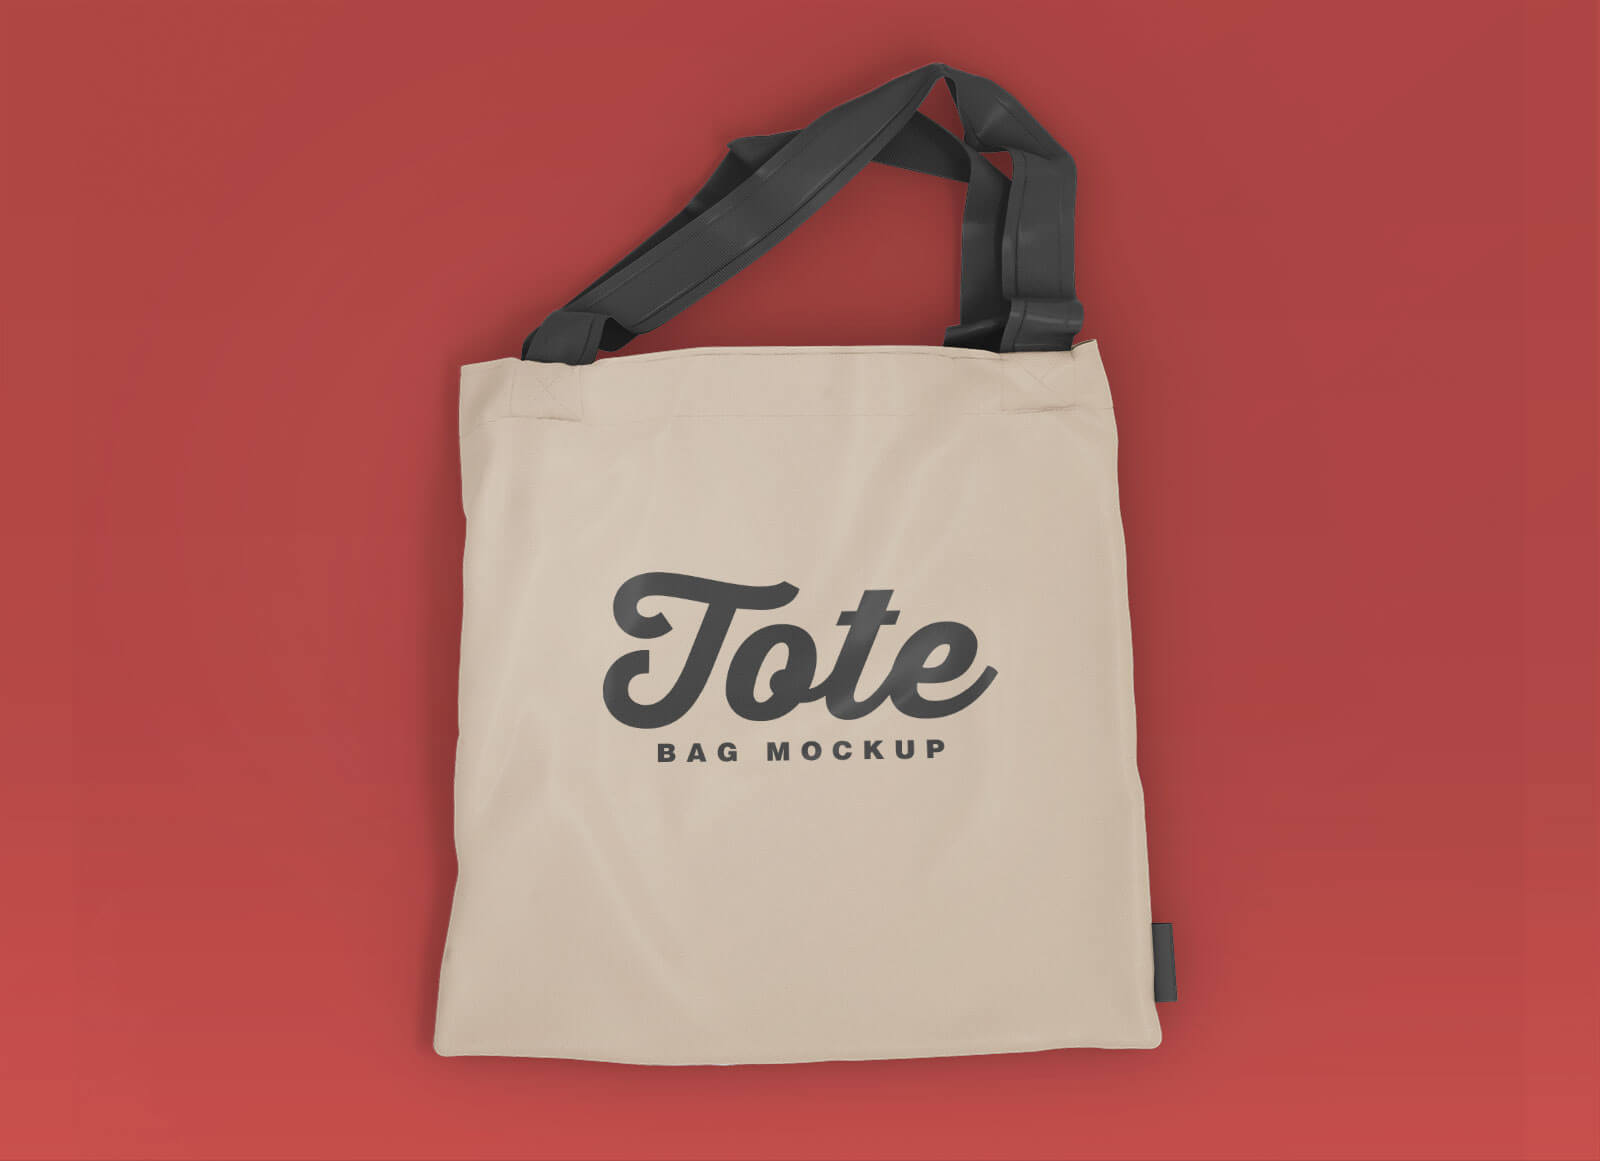 Free-Modern-Canvas-Tote-Bag-Mockup-PSD-File